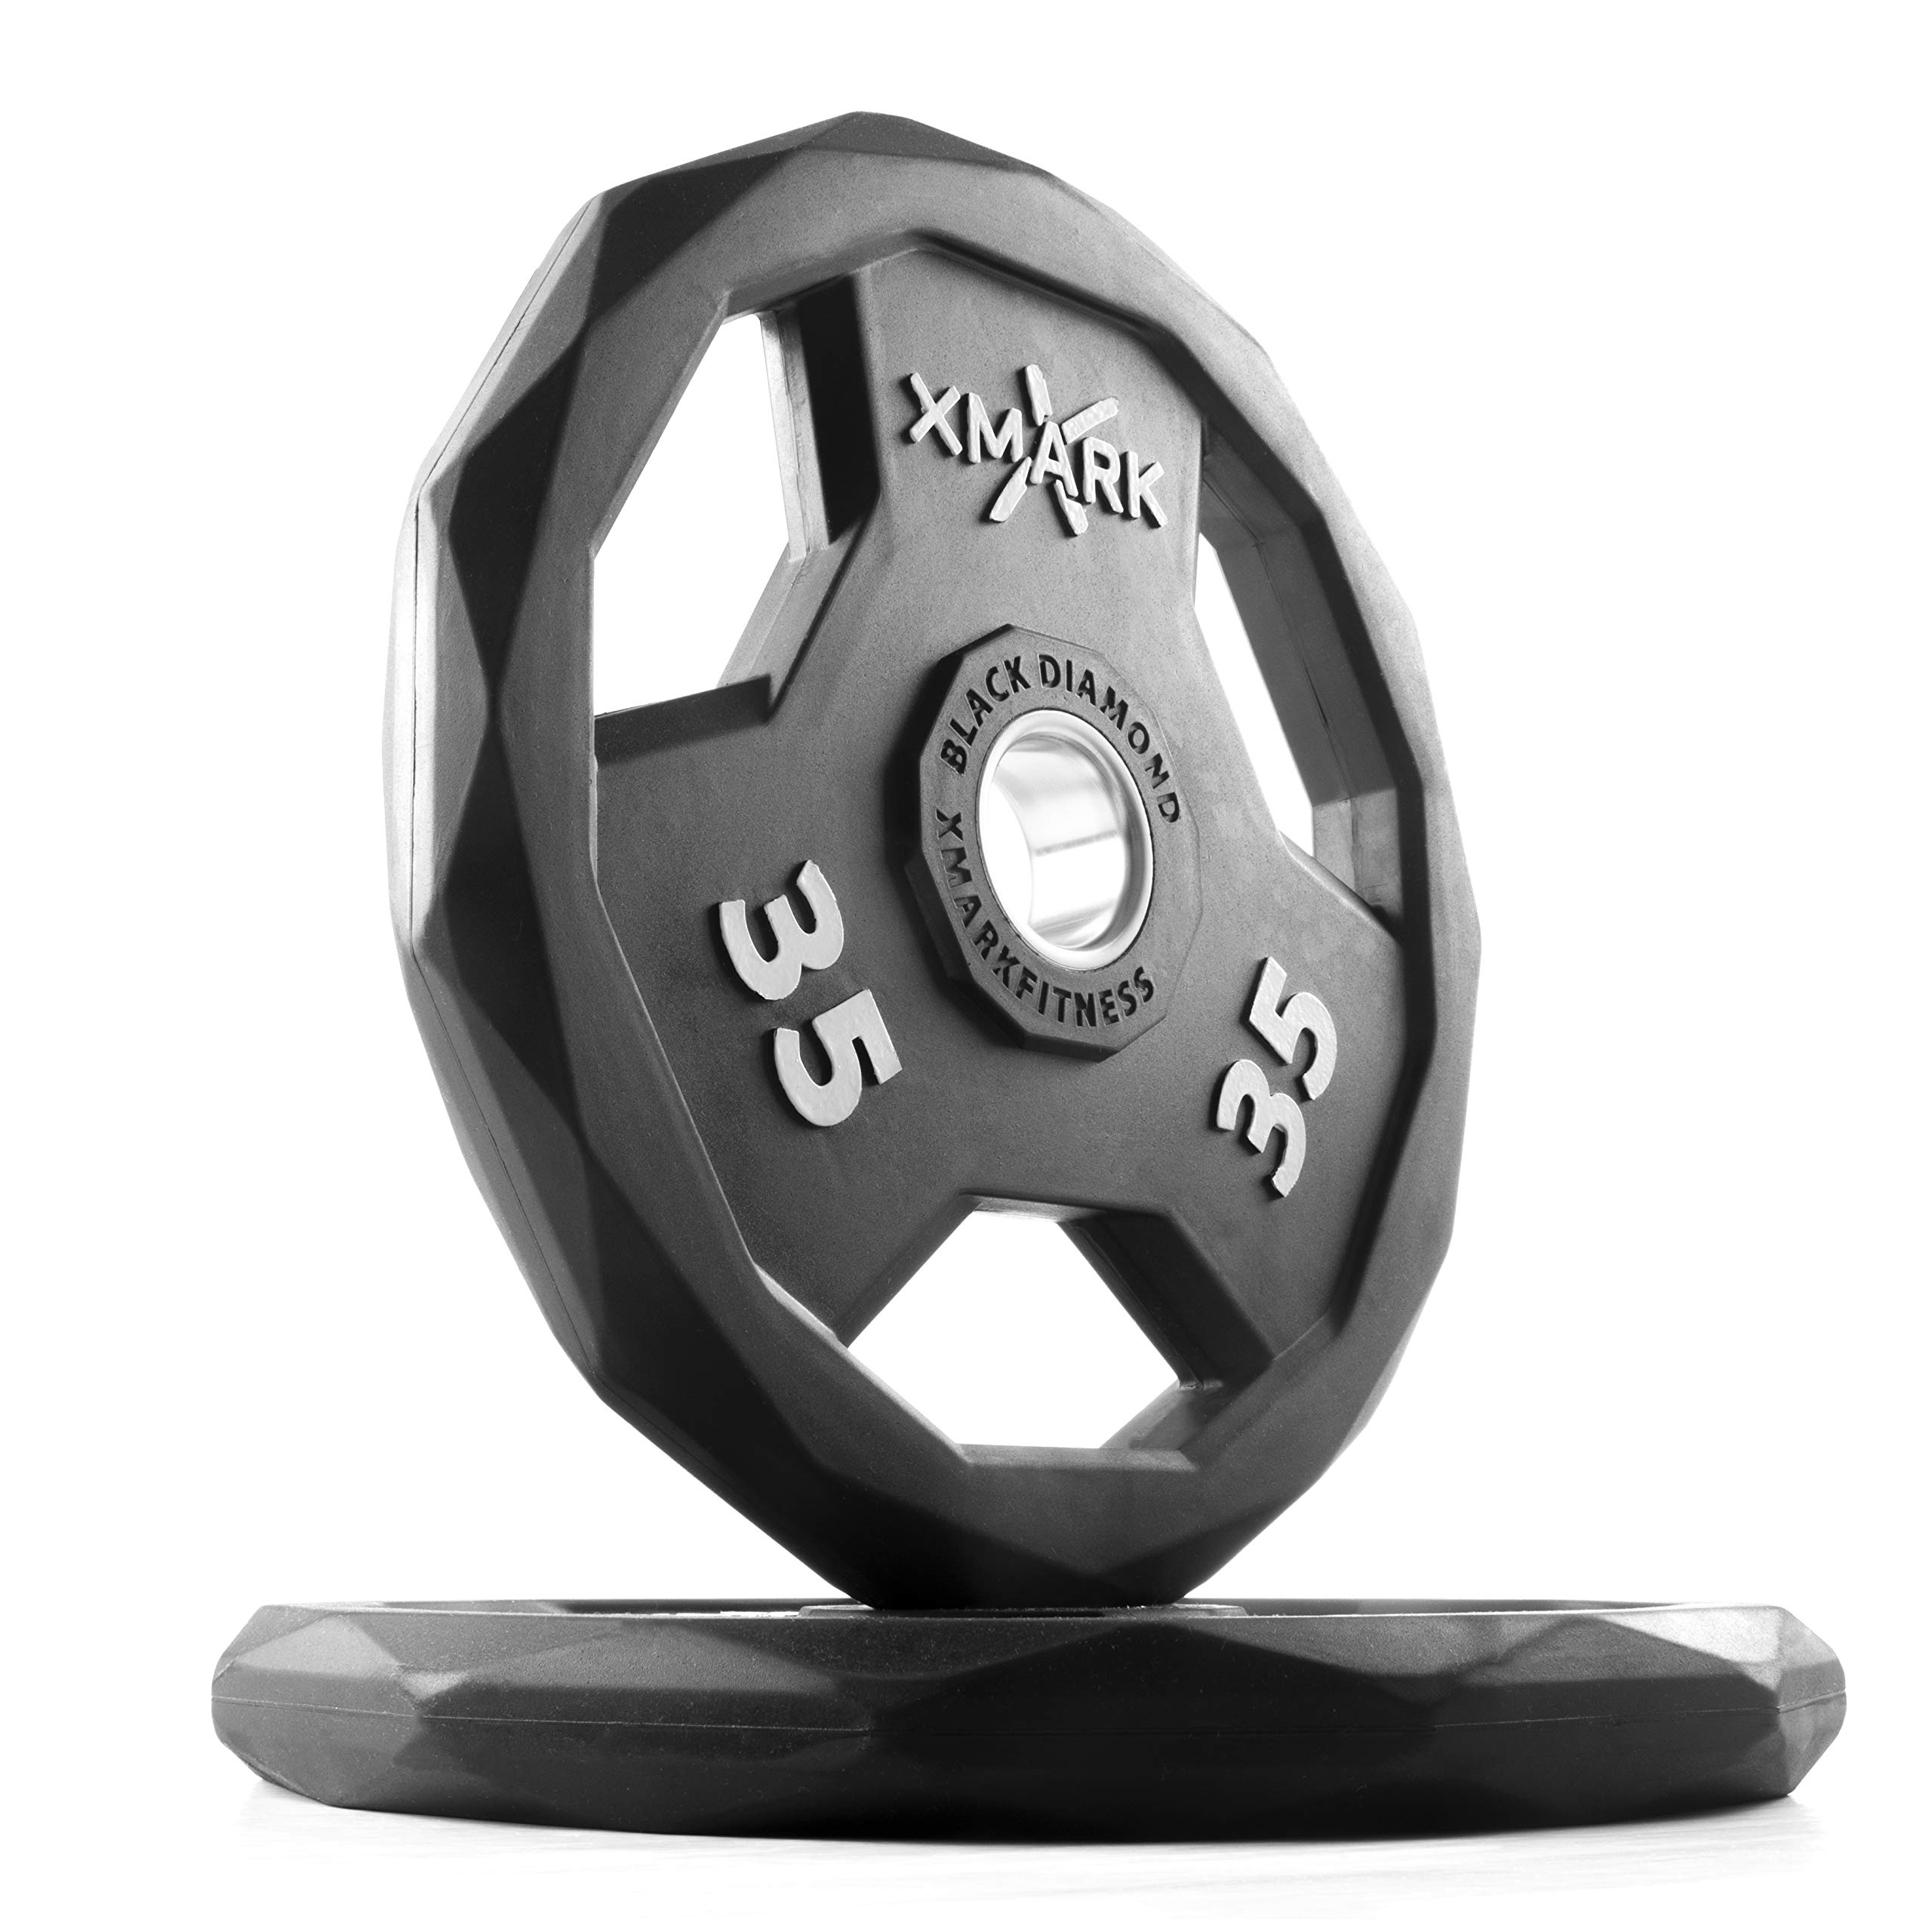 XMark Black Diamond 35 lb Pair Olympic Weight Plates, One-Year Warranty, Patented Design